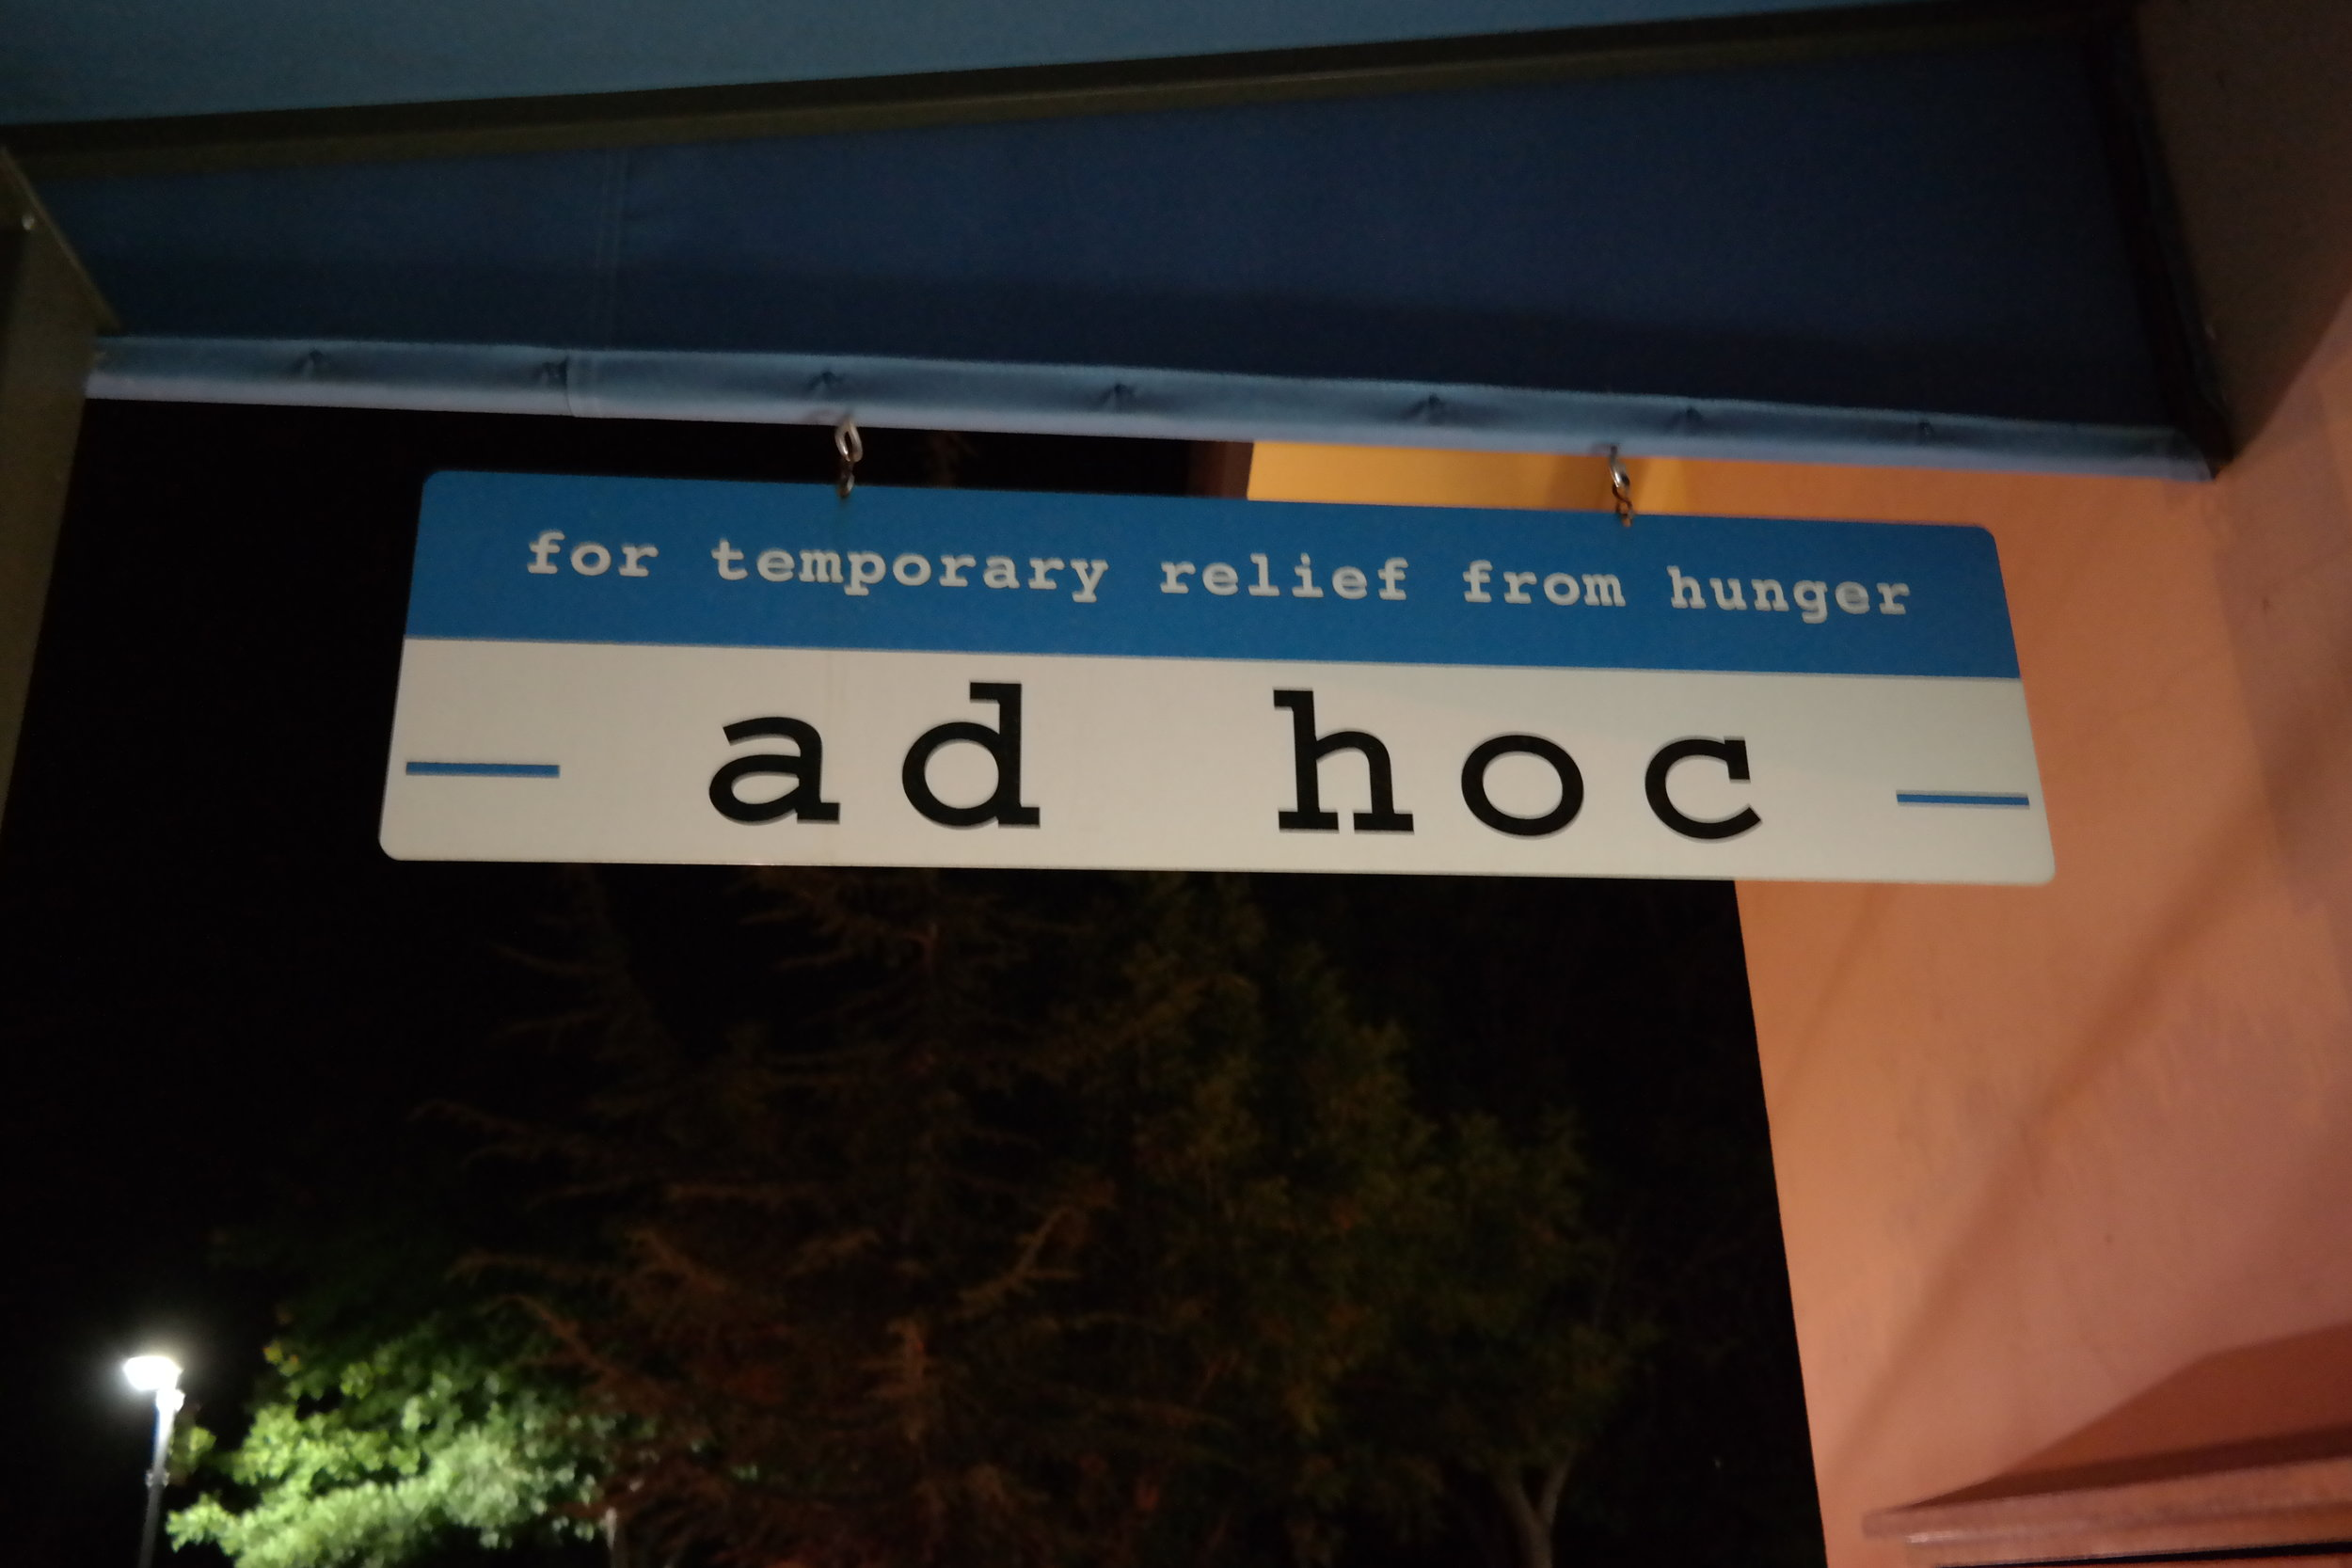 Need to drive back to Napa for a repeat of the flawless meal at Ad Hoc